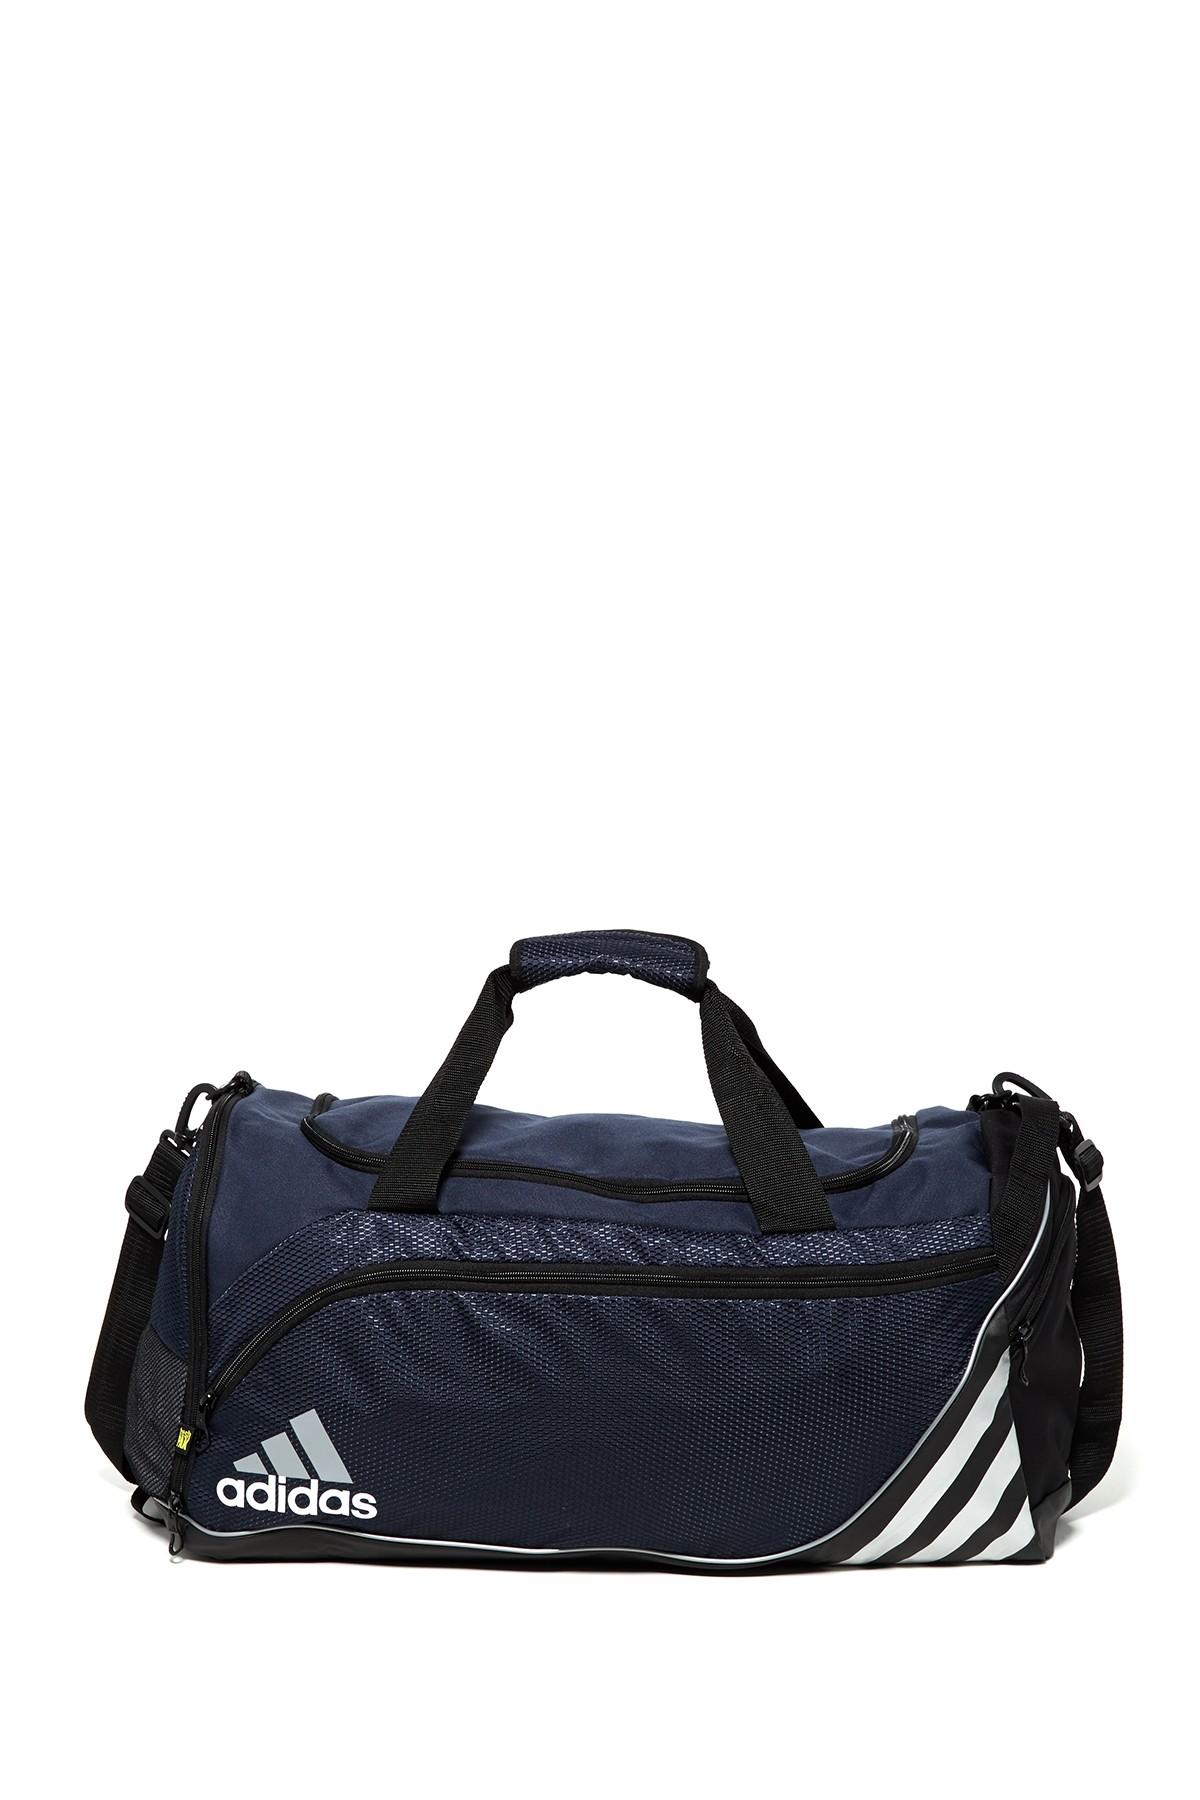 Adidas Originals Team Speed Medium Duffle Bag In Blue For